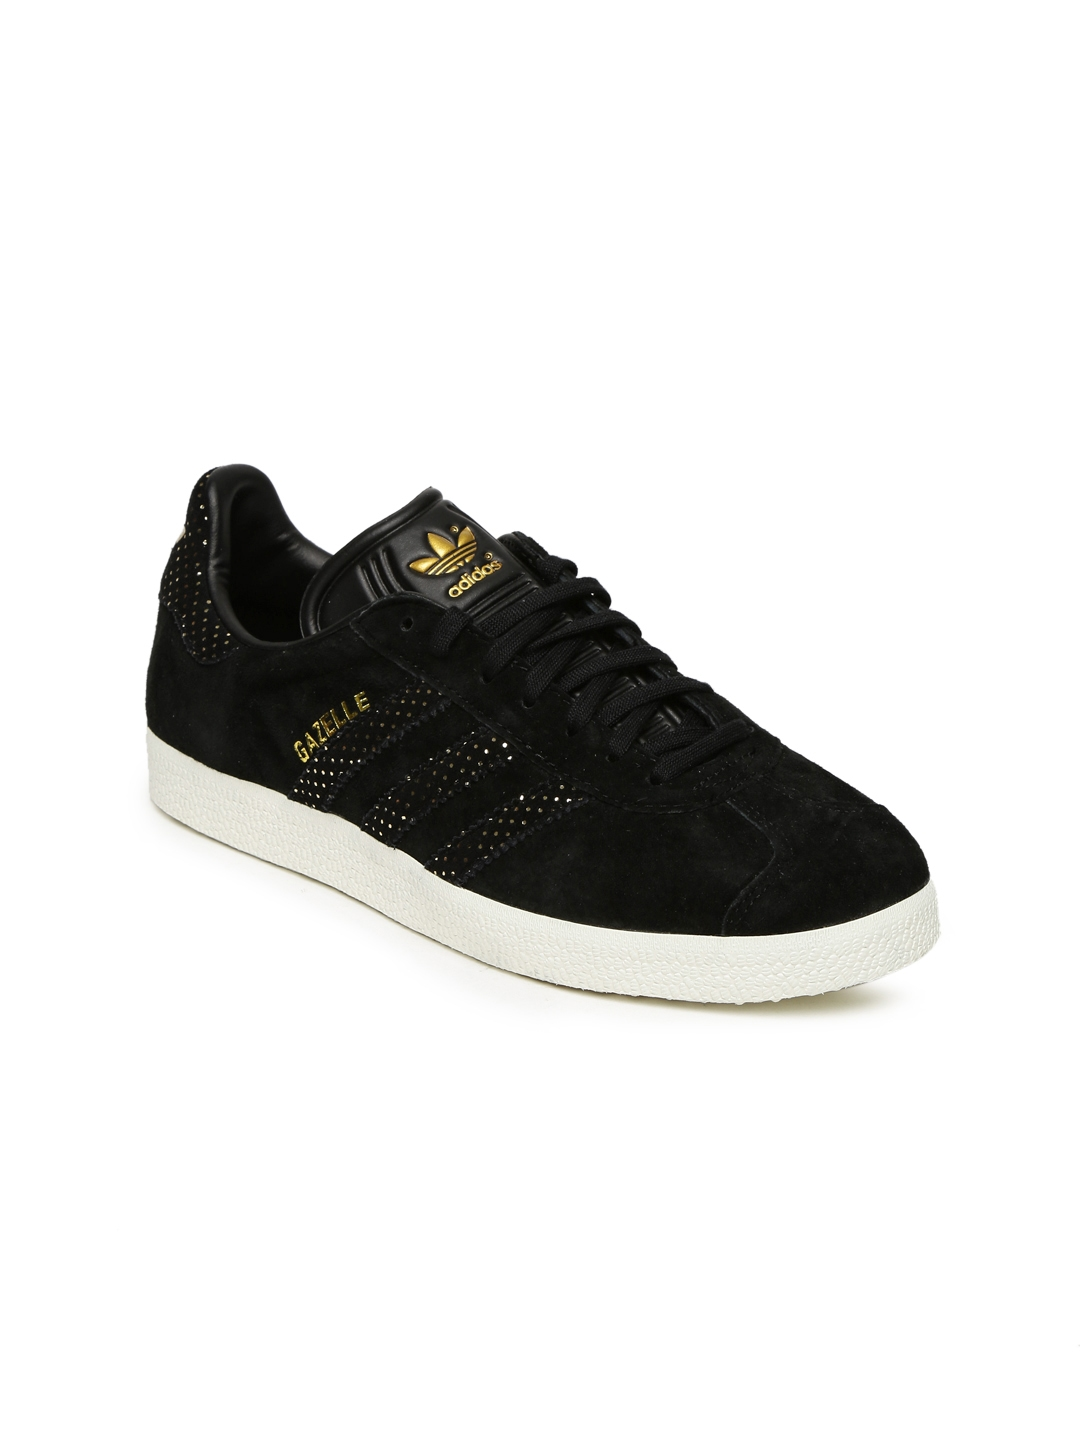 Buy Adidas Originals Women Black Gazelle Sneakers - Casual Shoes for ... 61362c9e7